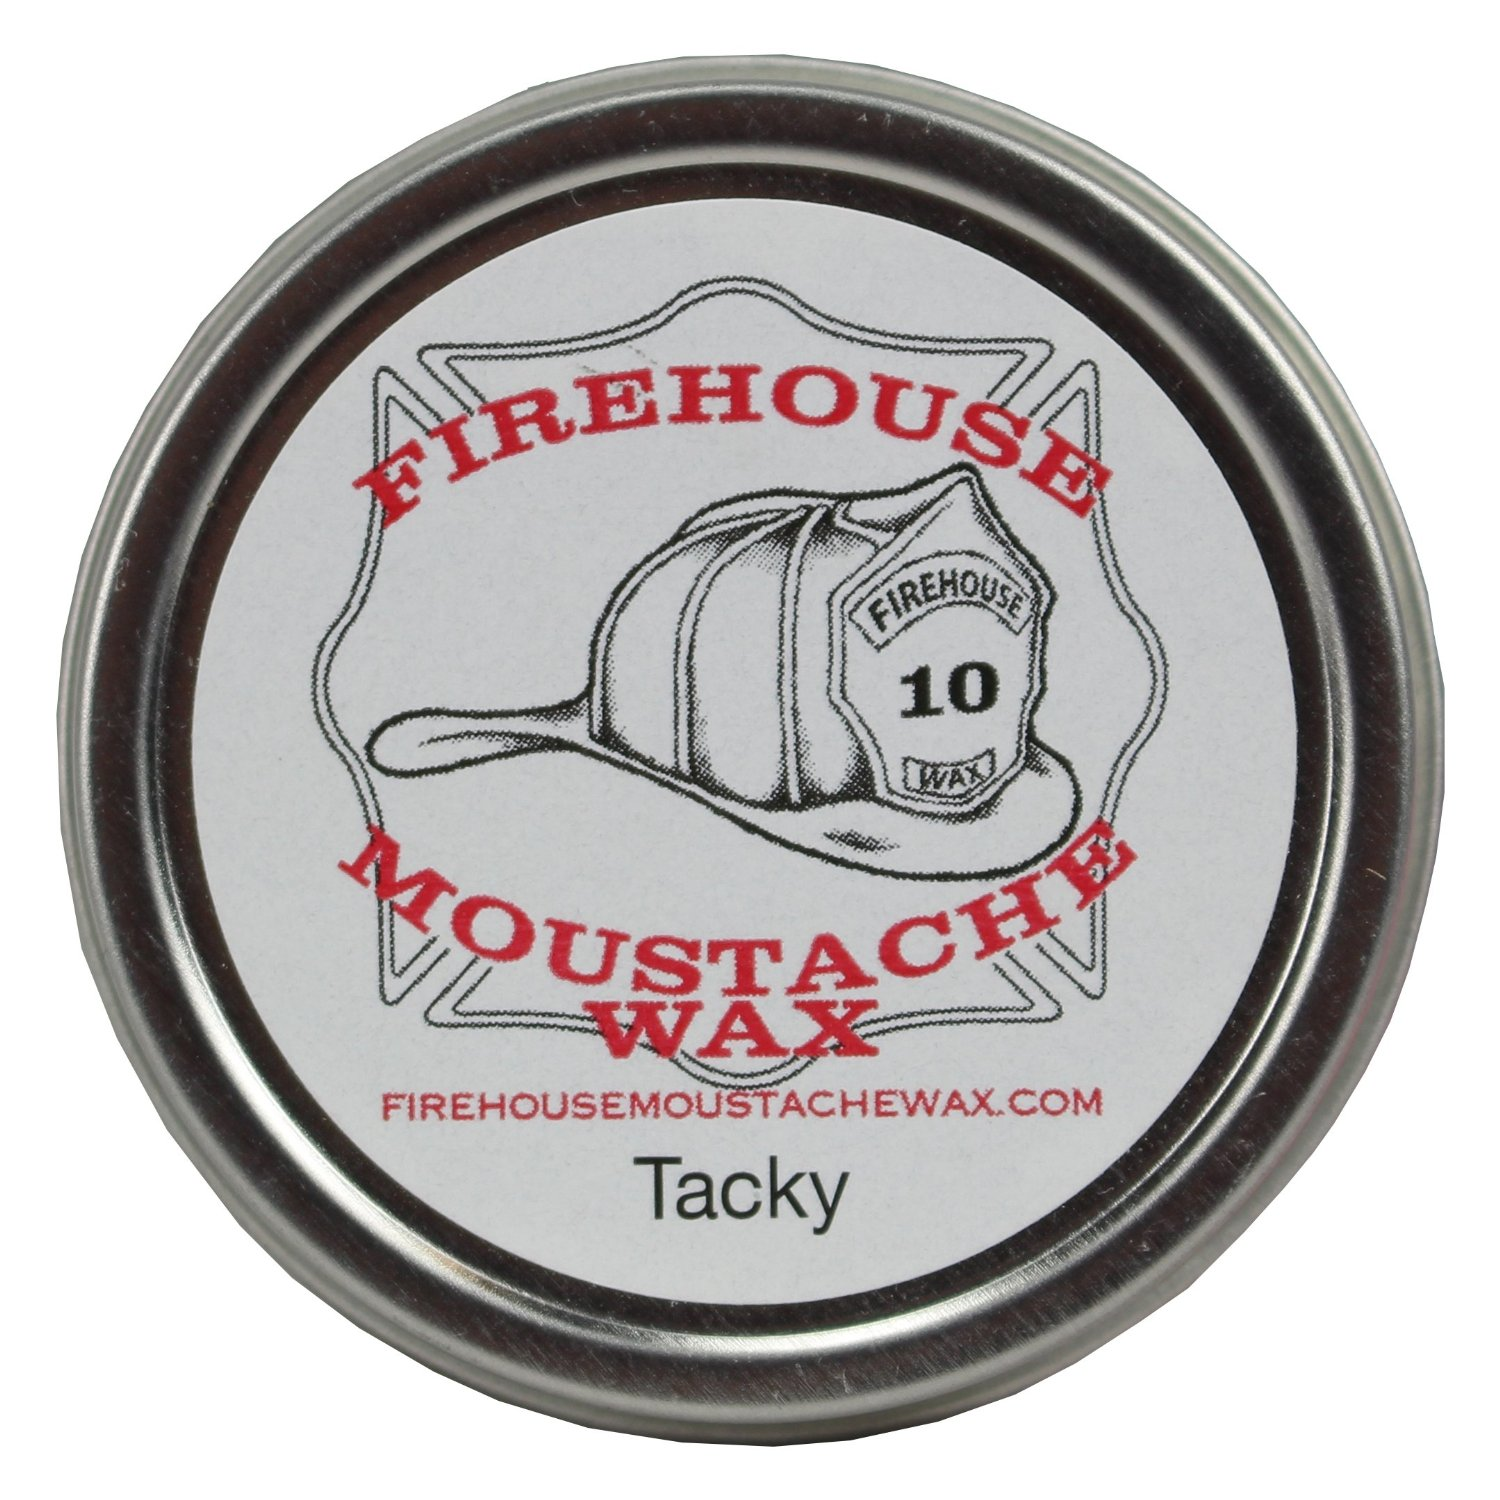 Firehouse Mustache Wax Wacky Tacky